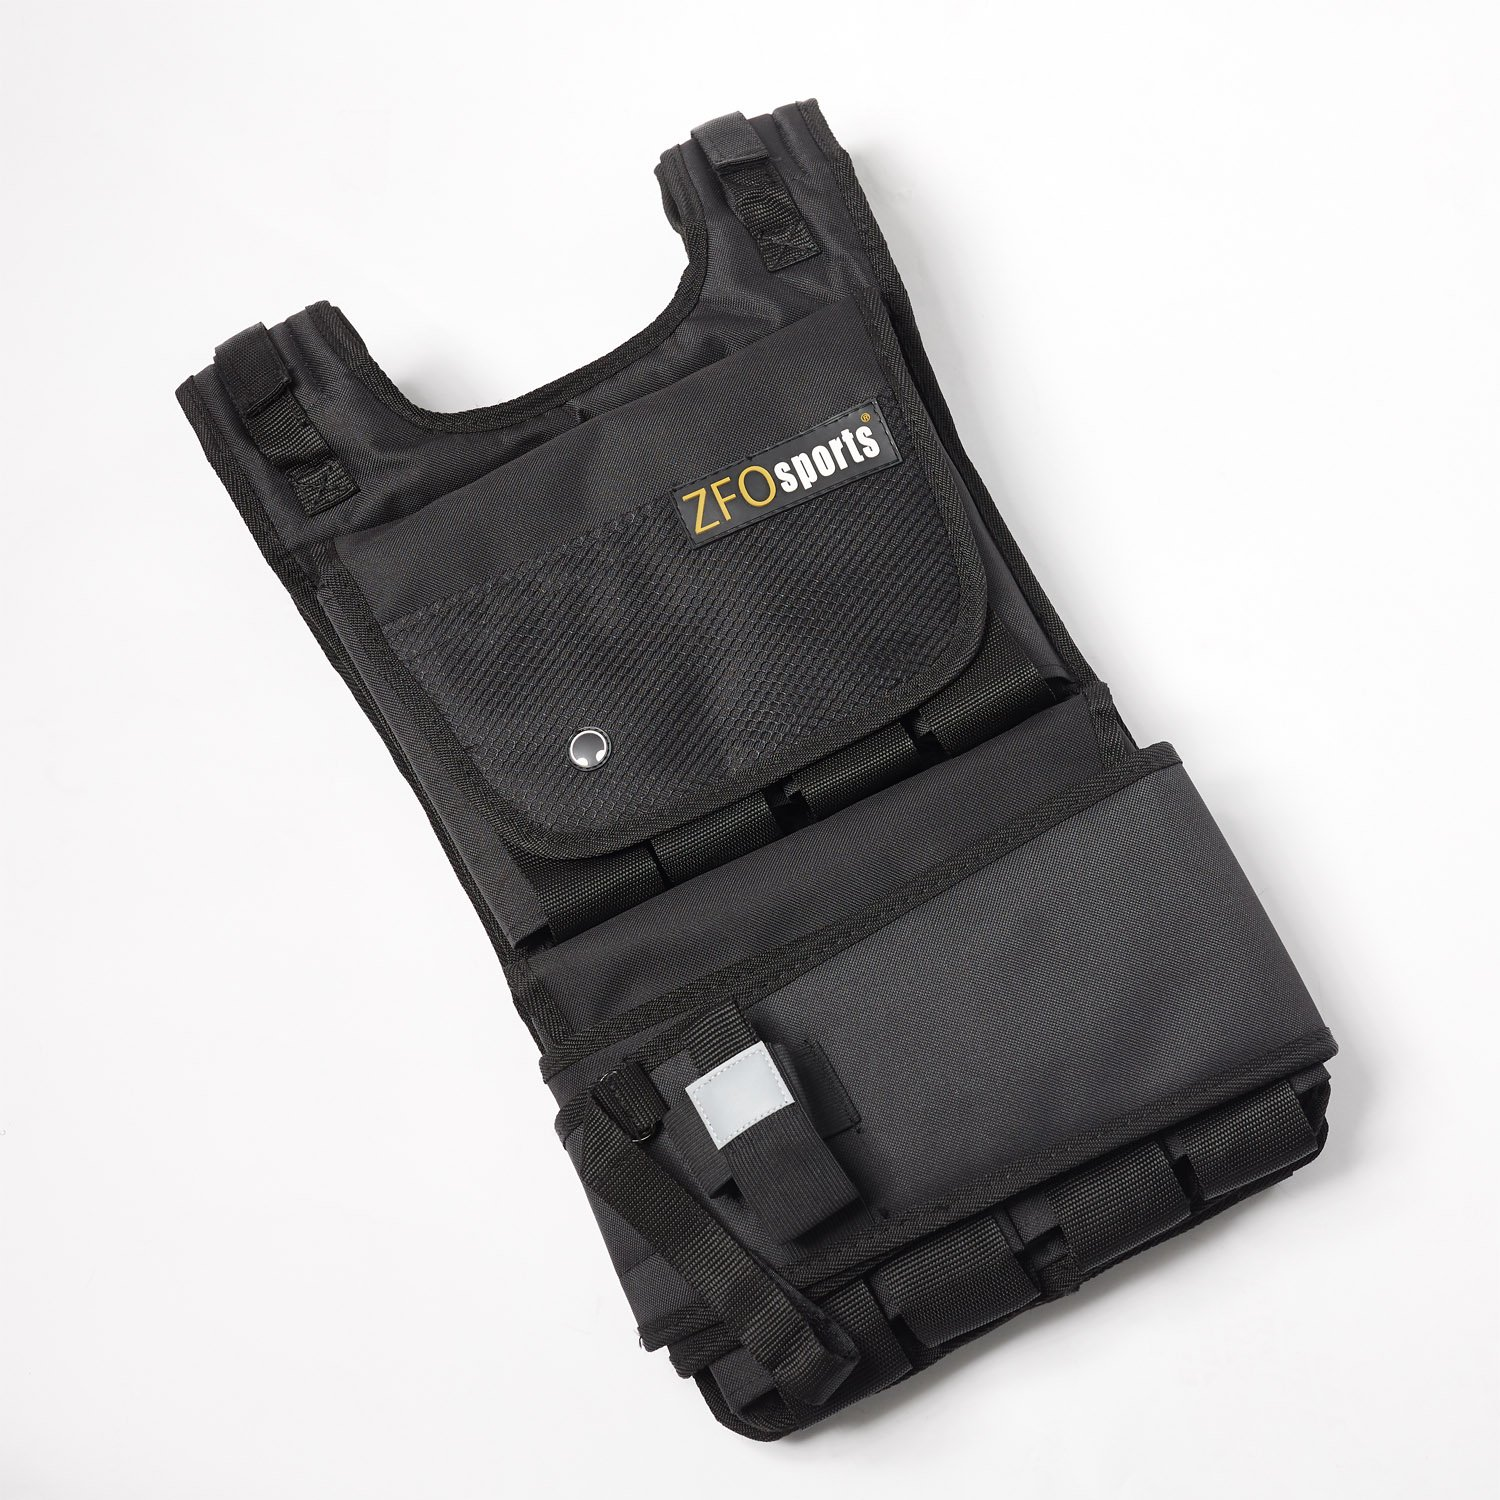 ZFOsports Weighted Vest review